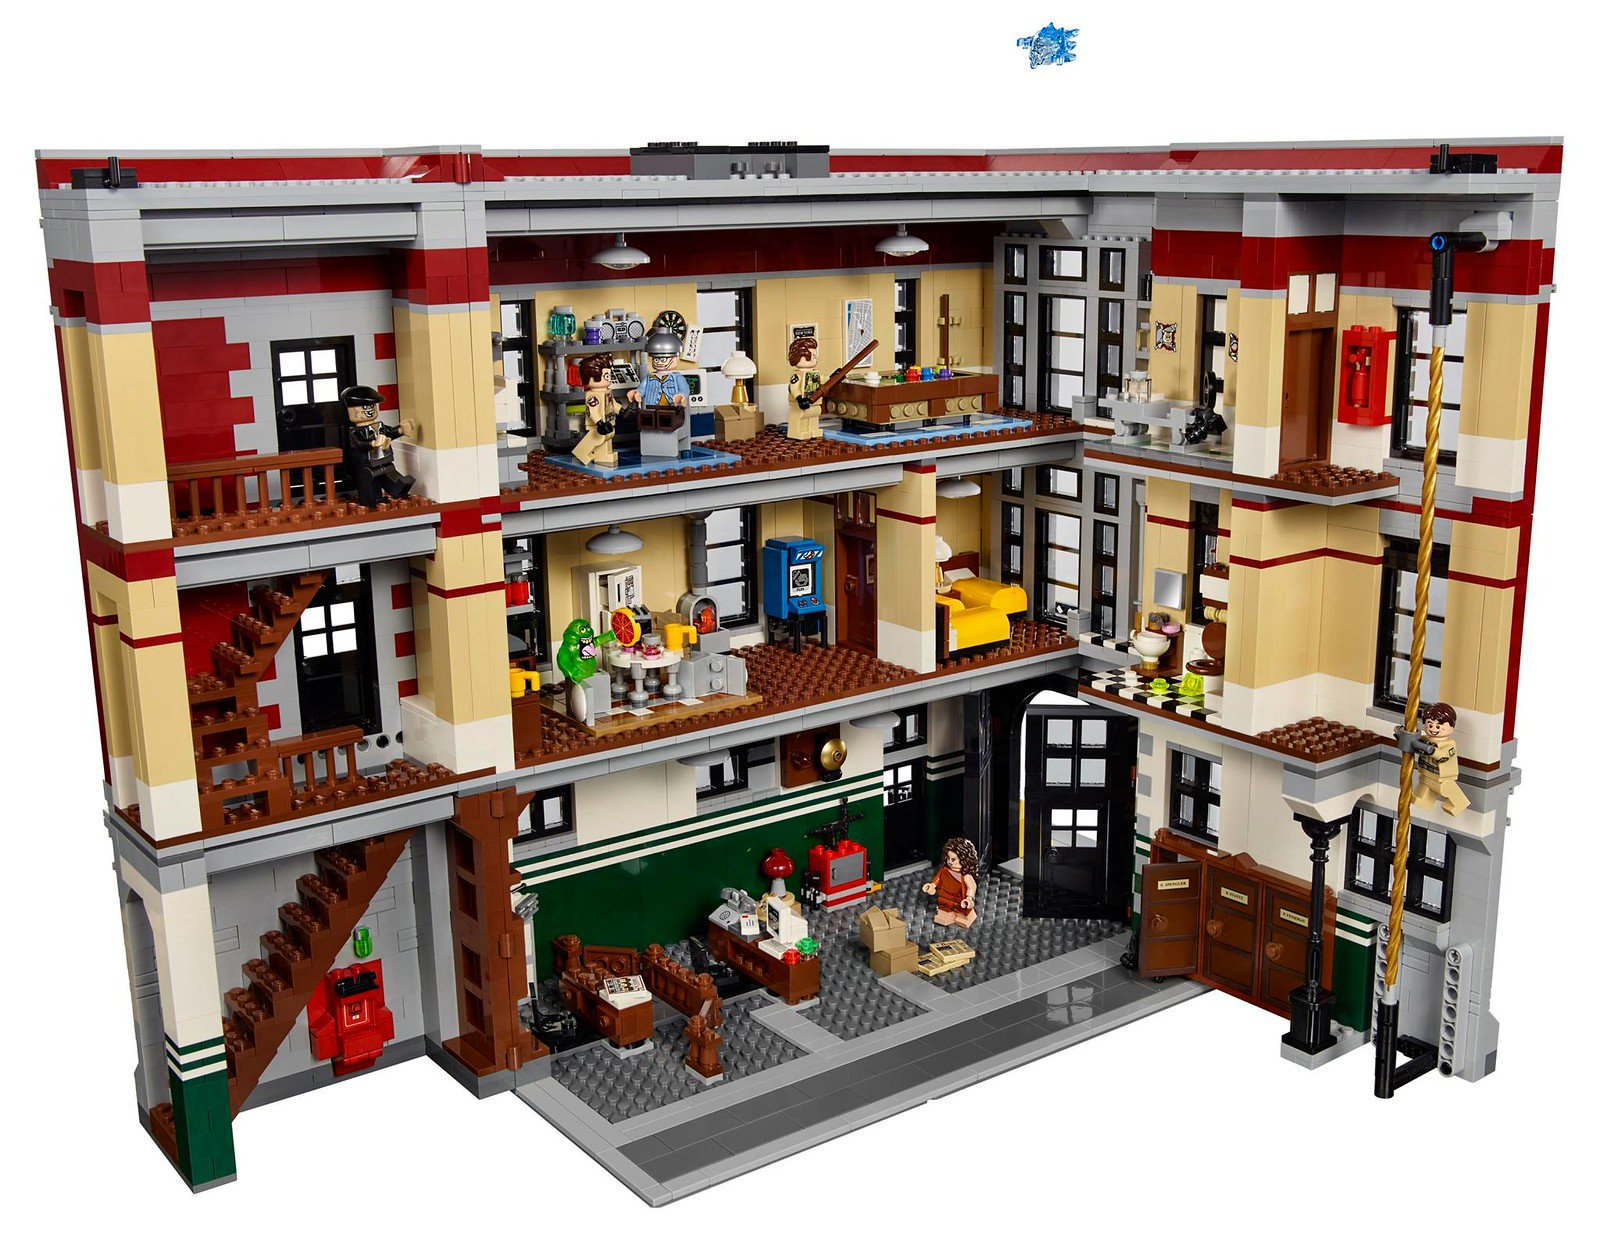 [LEGO] SOS Fantômes - Ghostbusters - Page 4 22948216135_2ad8724b0d_h